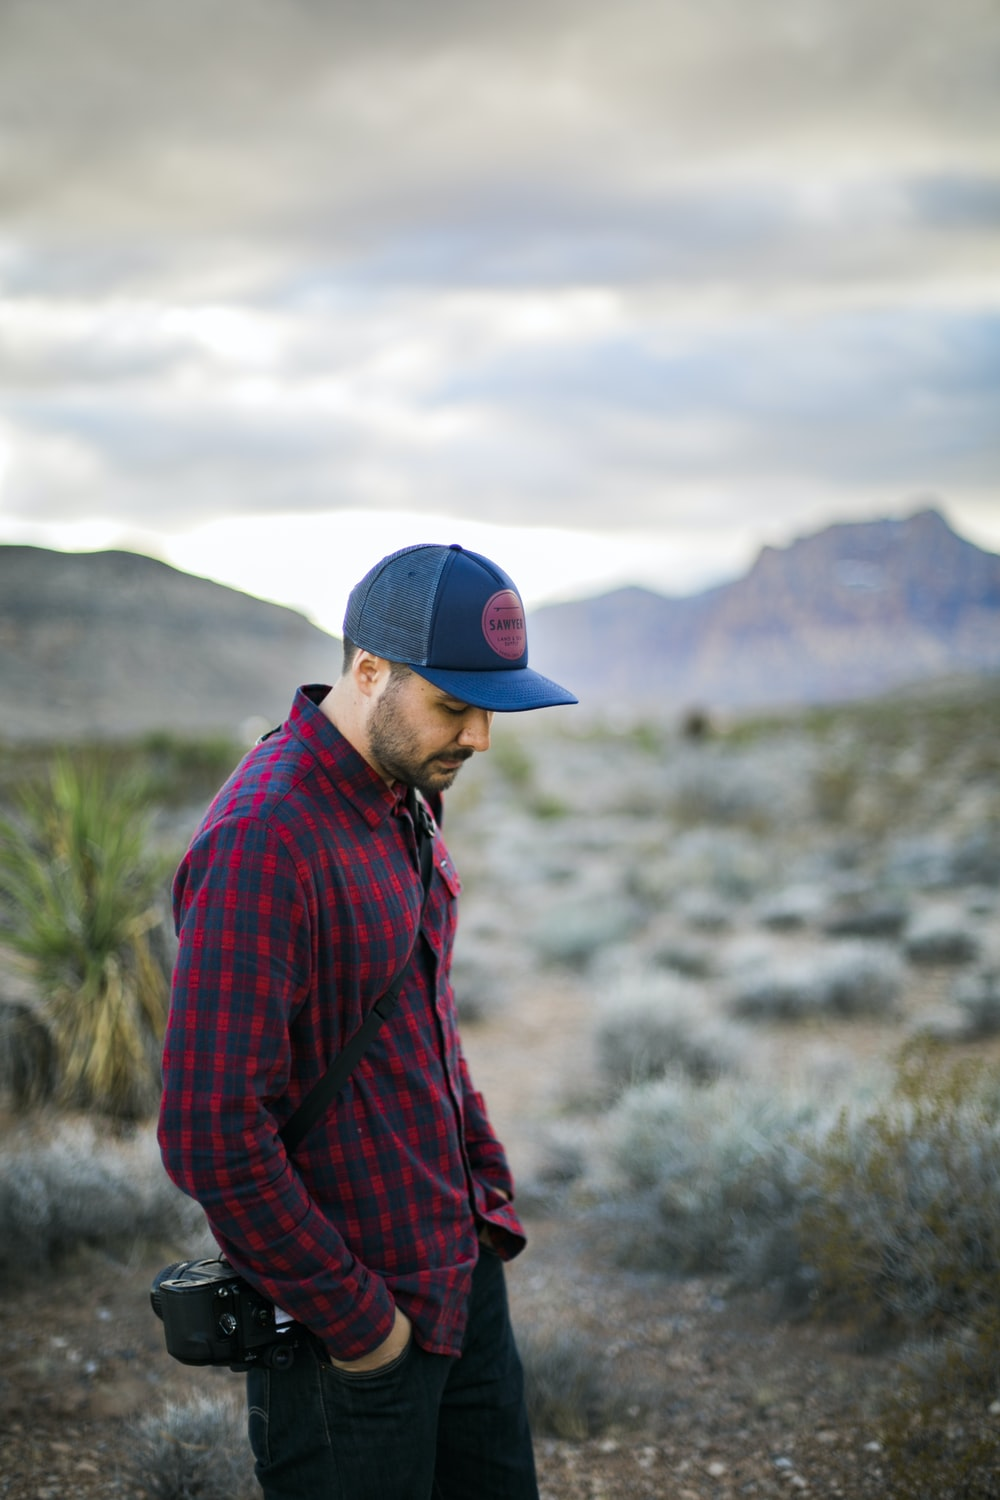 man in red and black plaid dress shirt and blue fitted cap standing on green grass